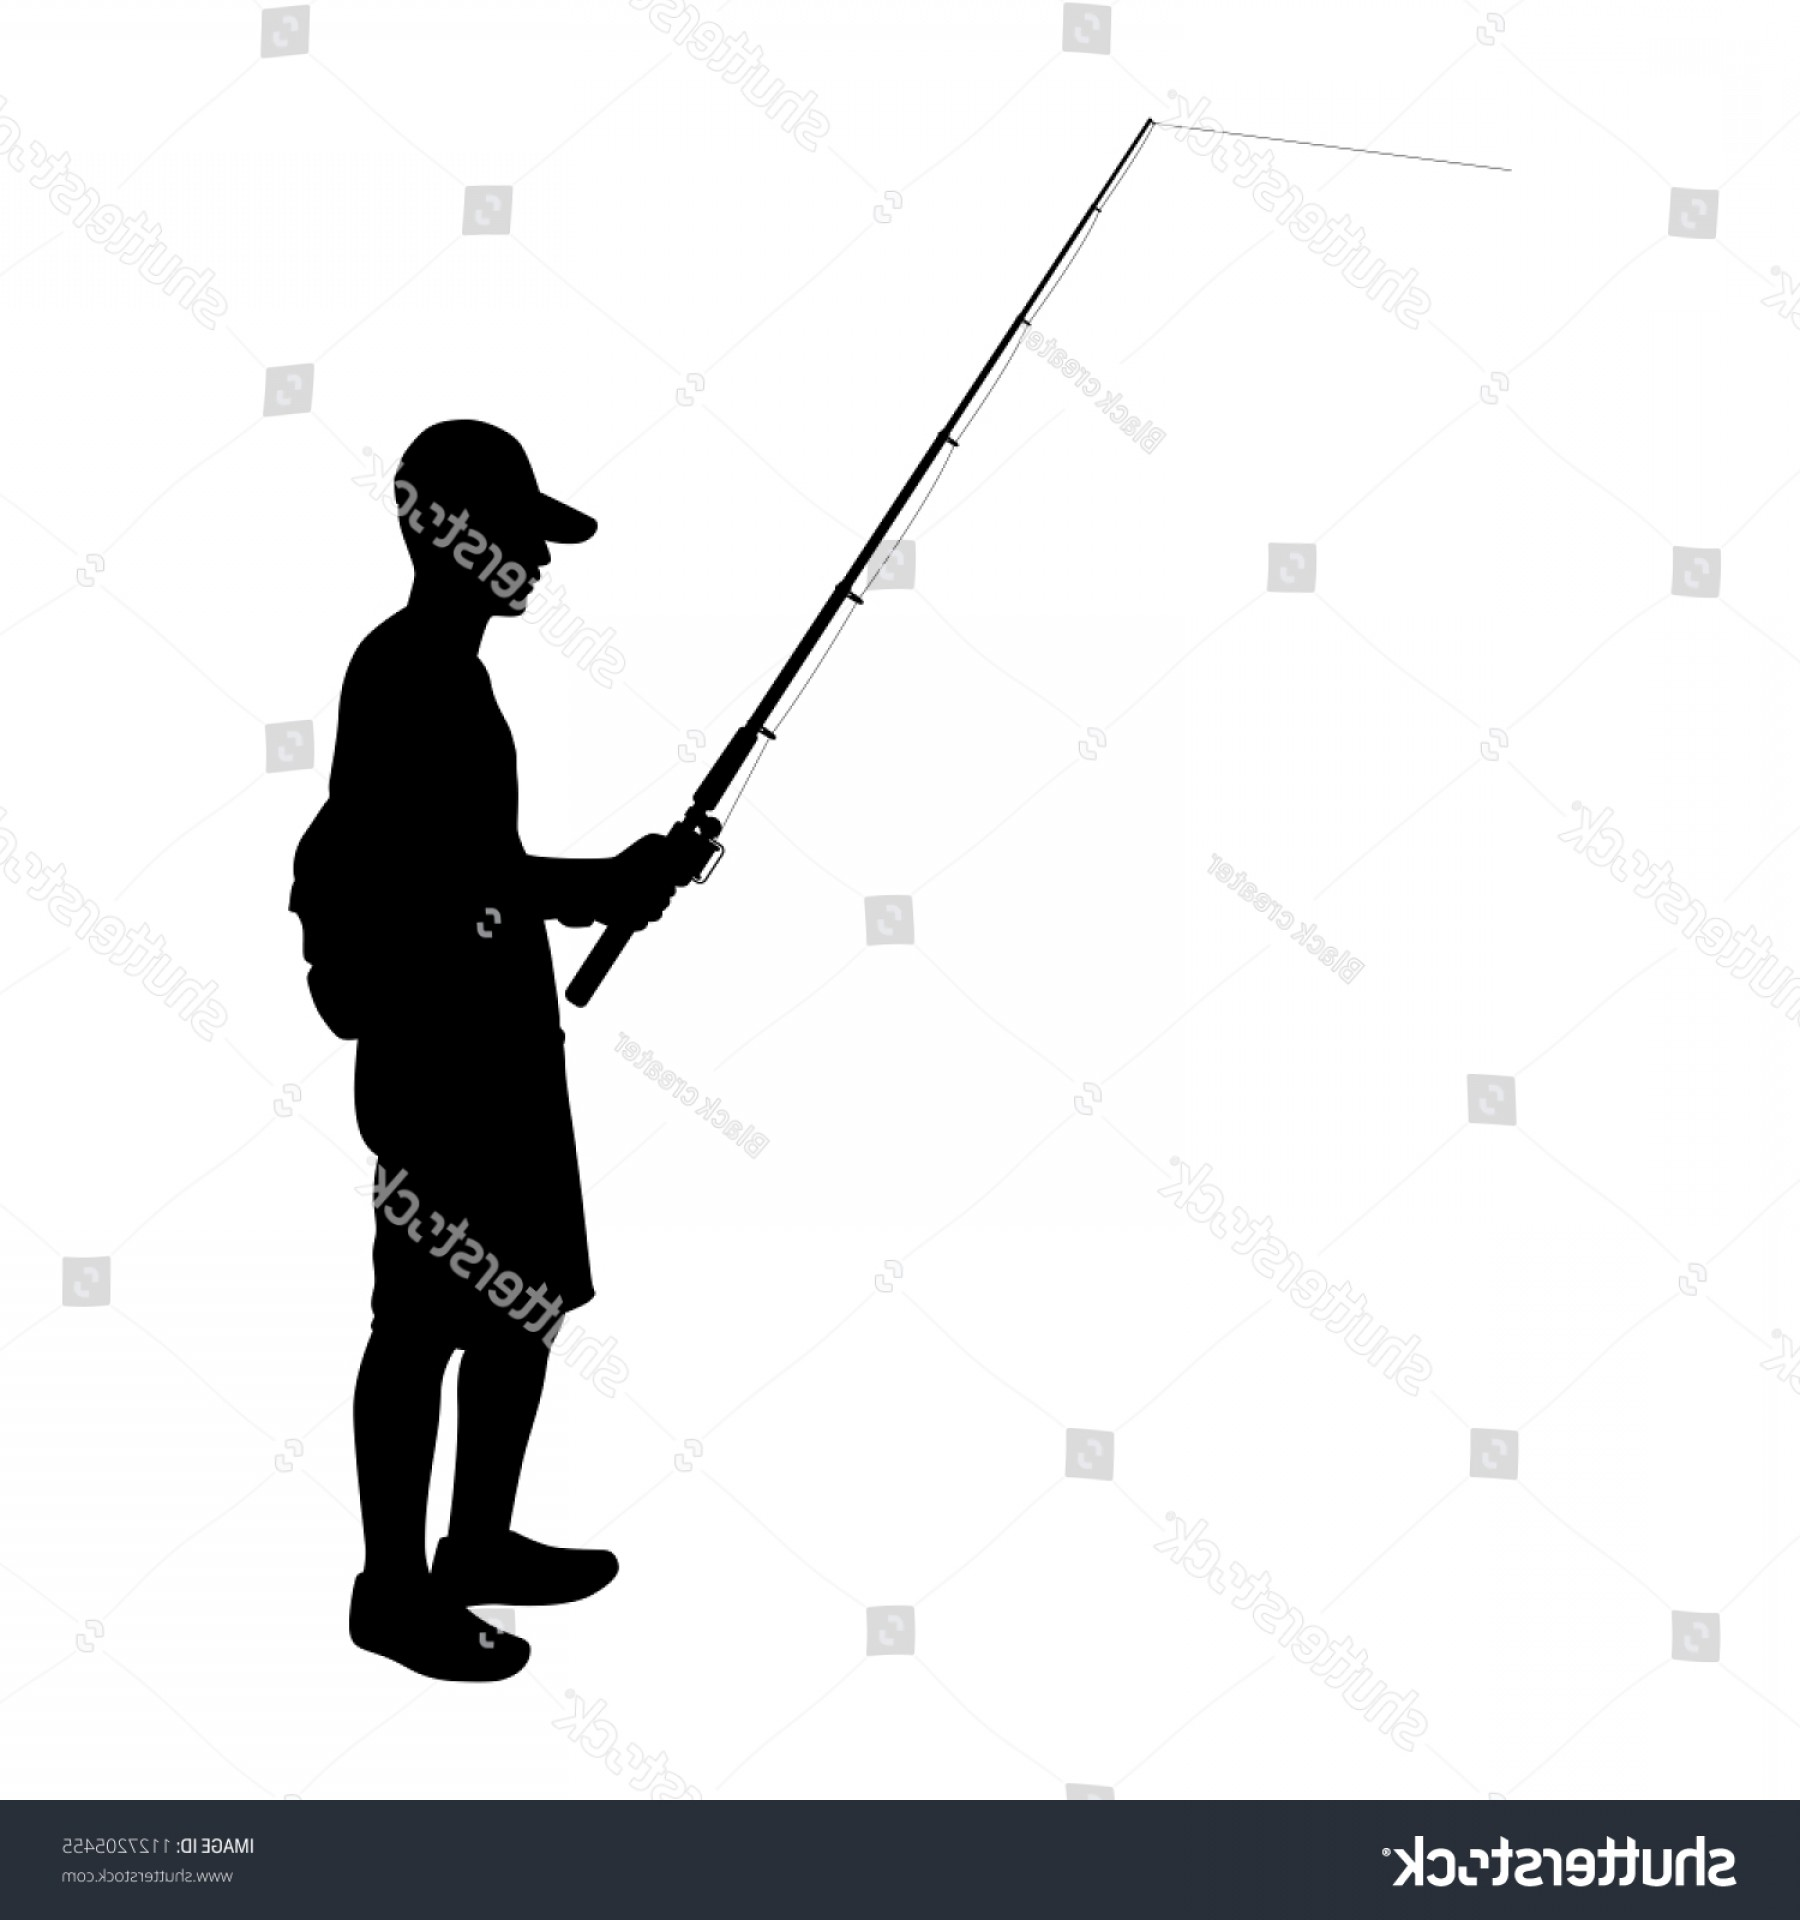 Fishing Pole Silhouette Vector: Young Man Fishing Pole Hand Silhouette